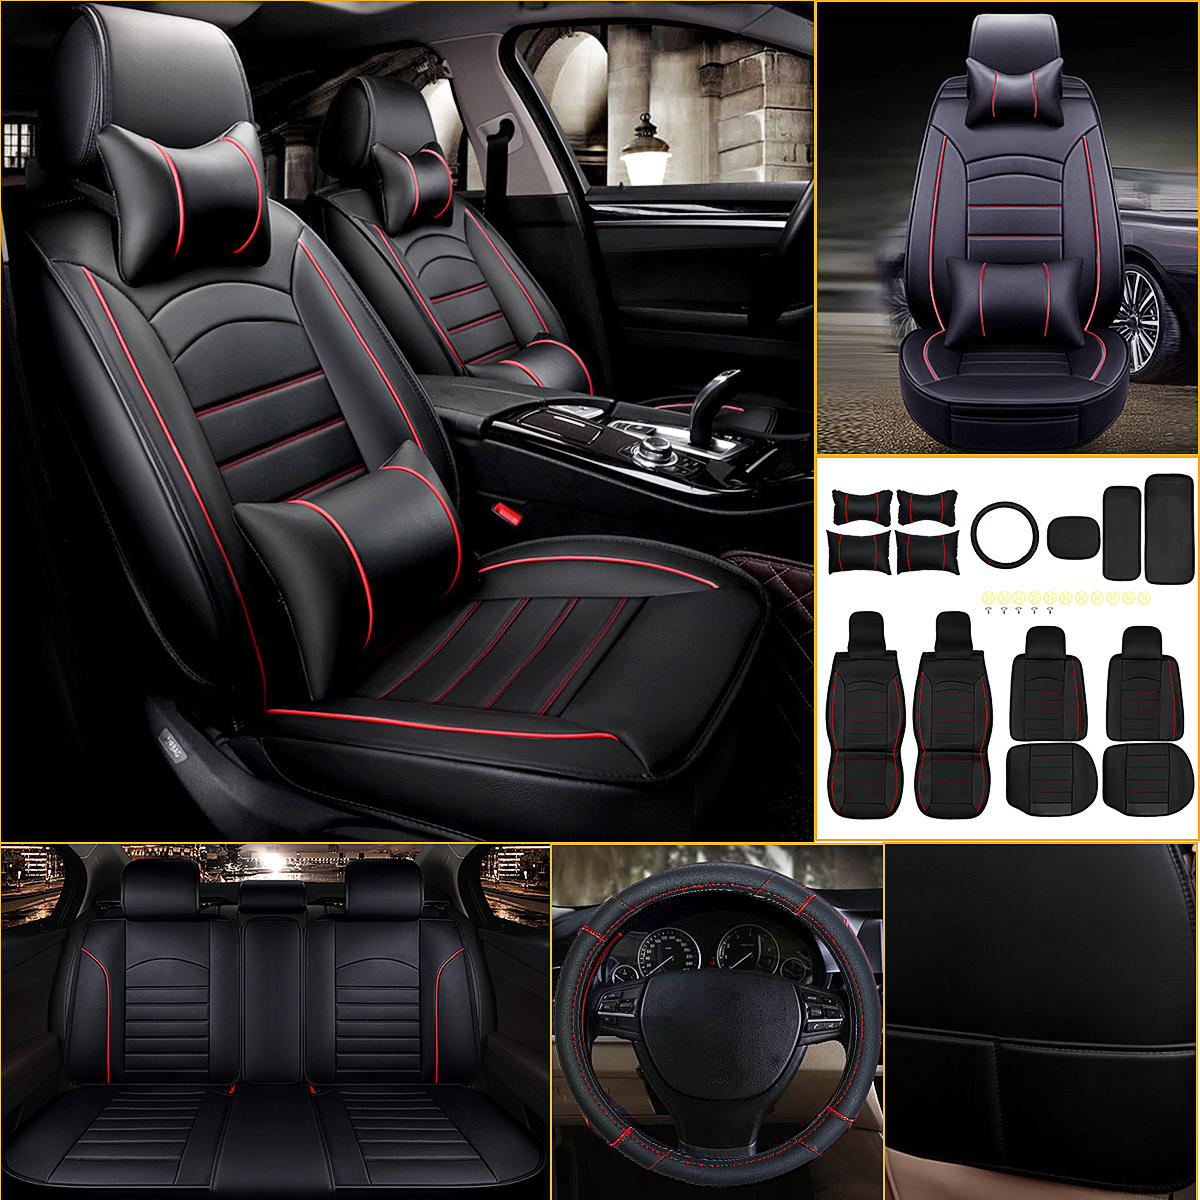 Heated Front Seats And Steering Wheel: Universal 5-seat Front And Rear Car Seat Cover With Neck